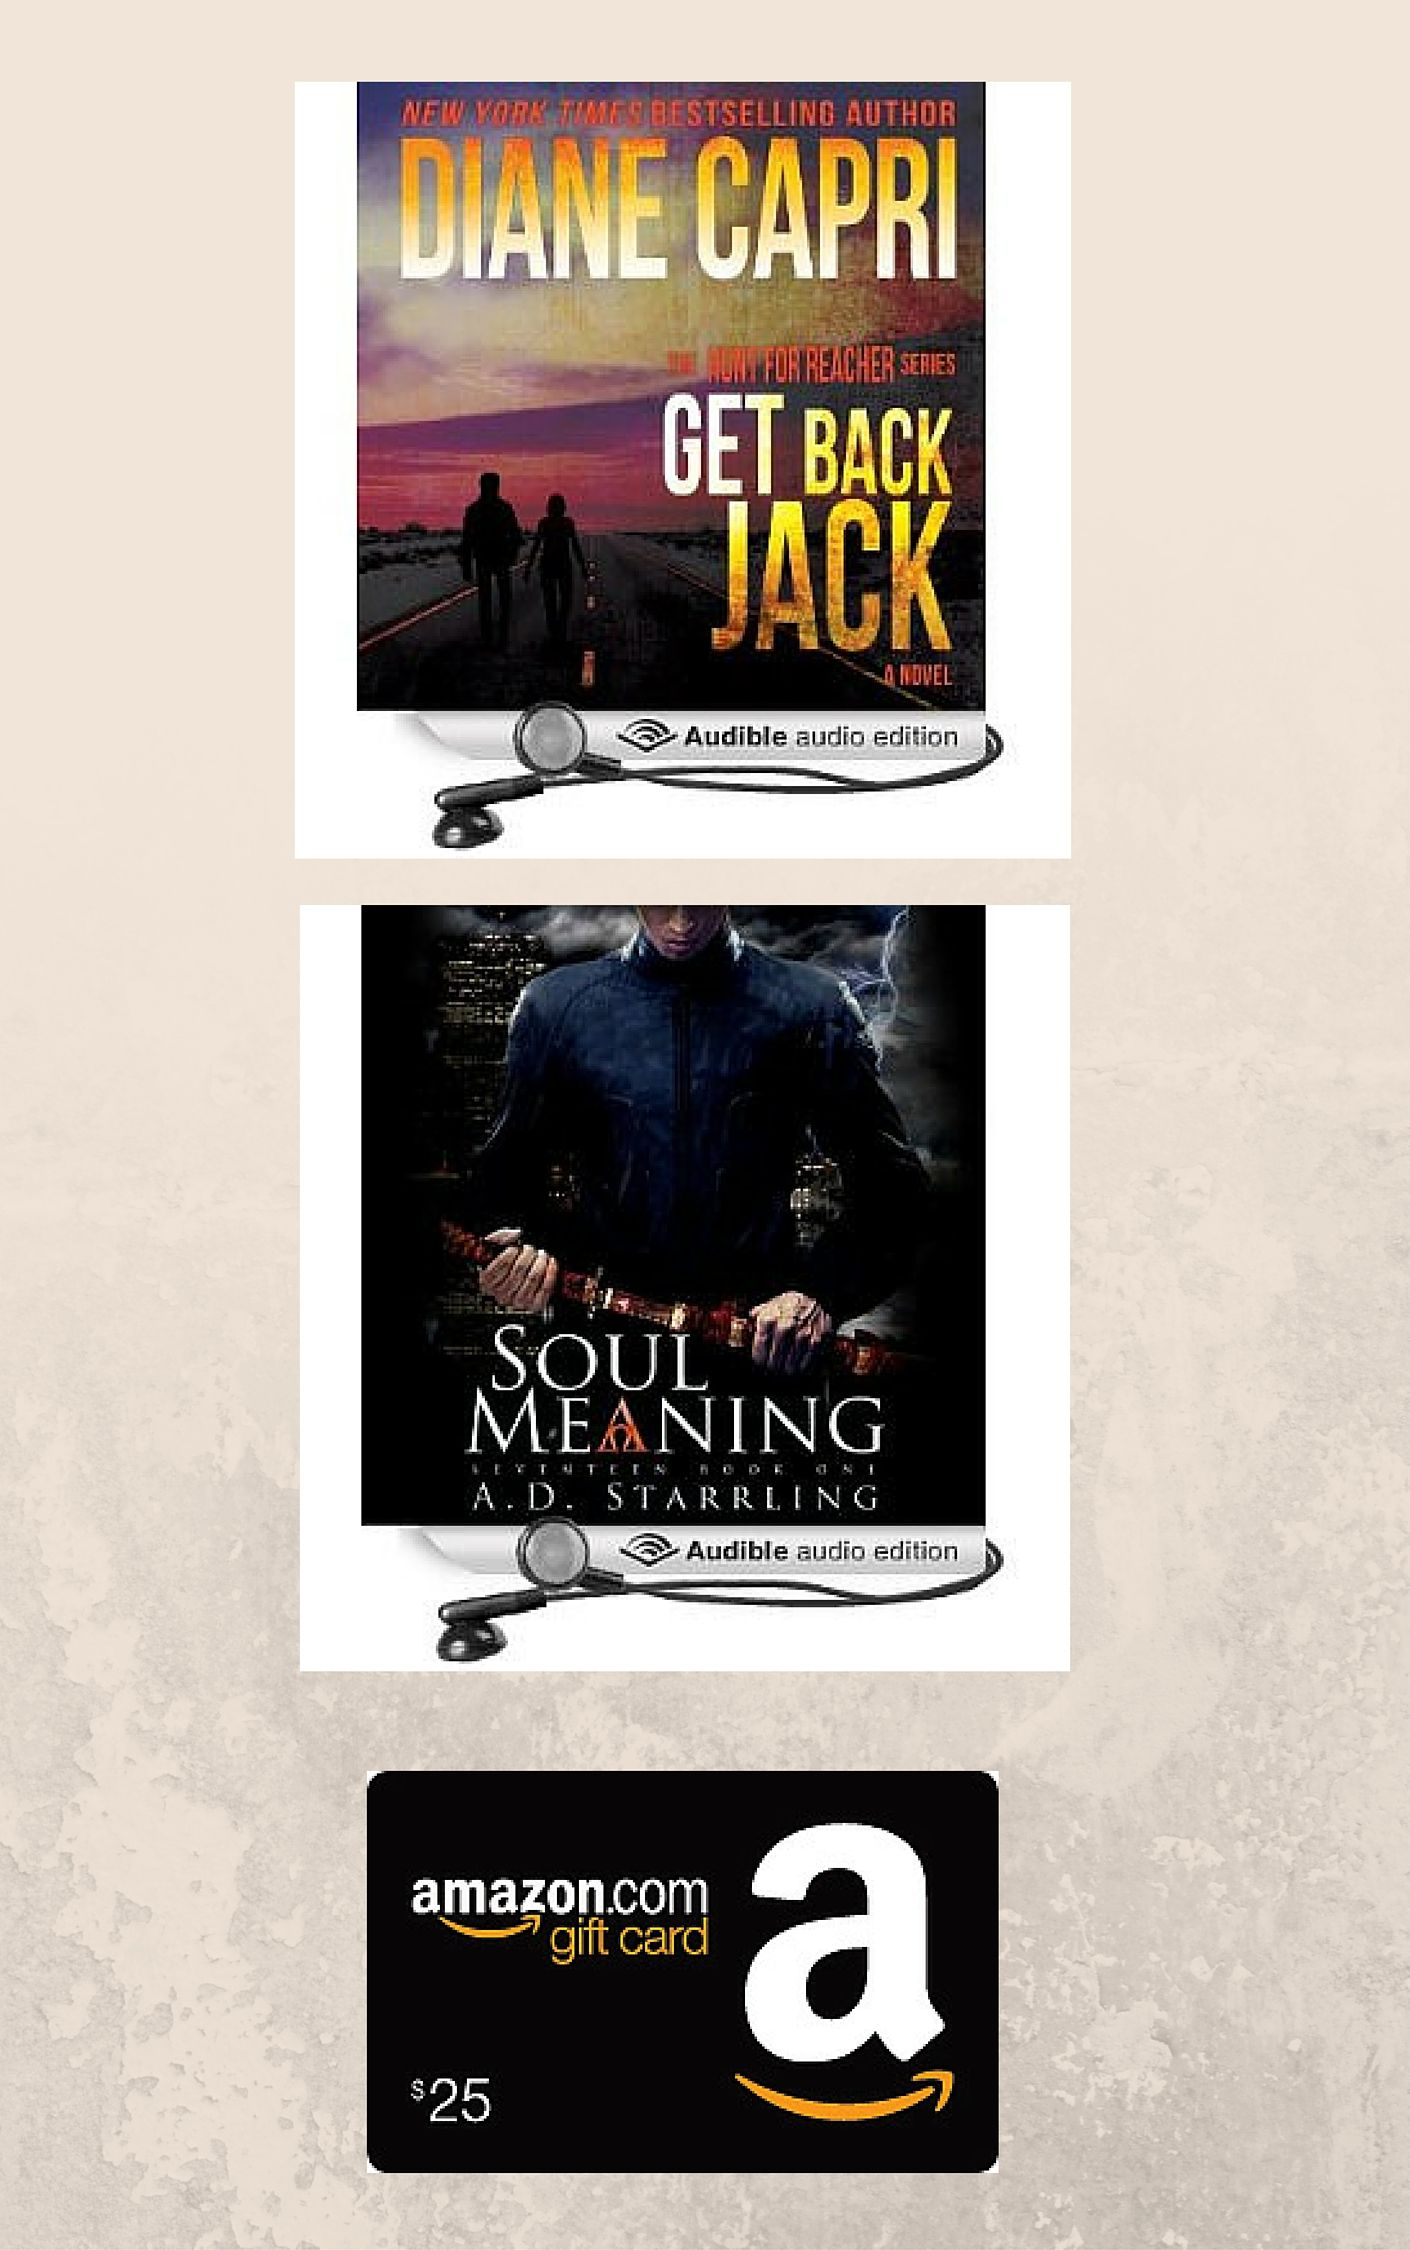 Audiobooks 25 Amazon Gift Card Package Amazon Gift Cards Book Giveaways Gift Card